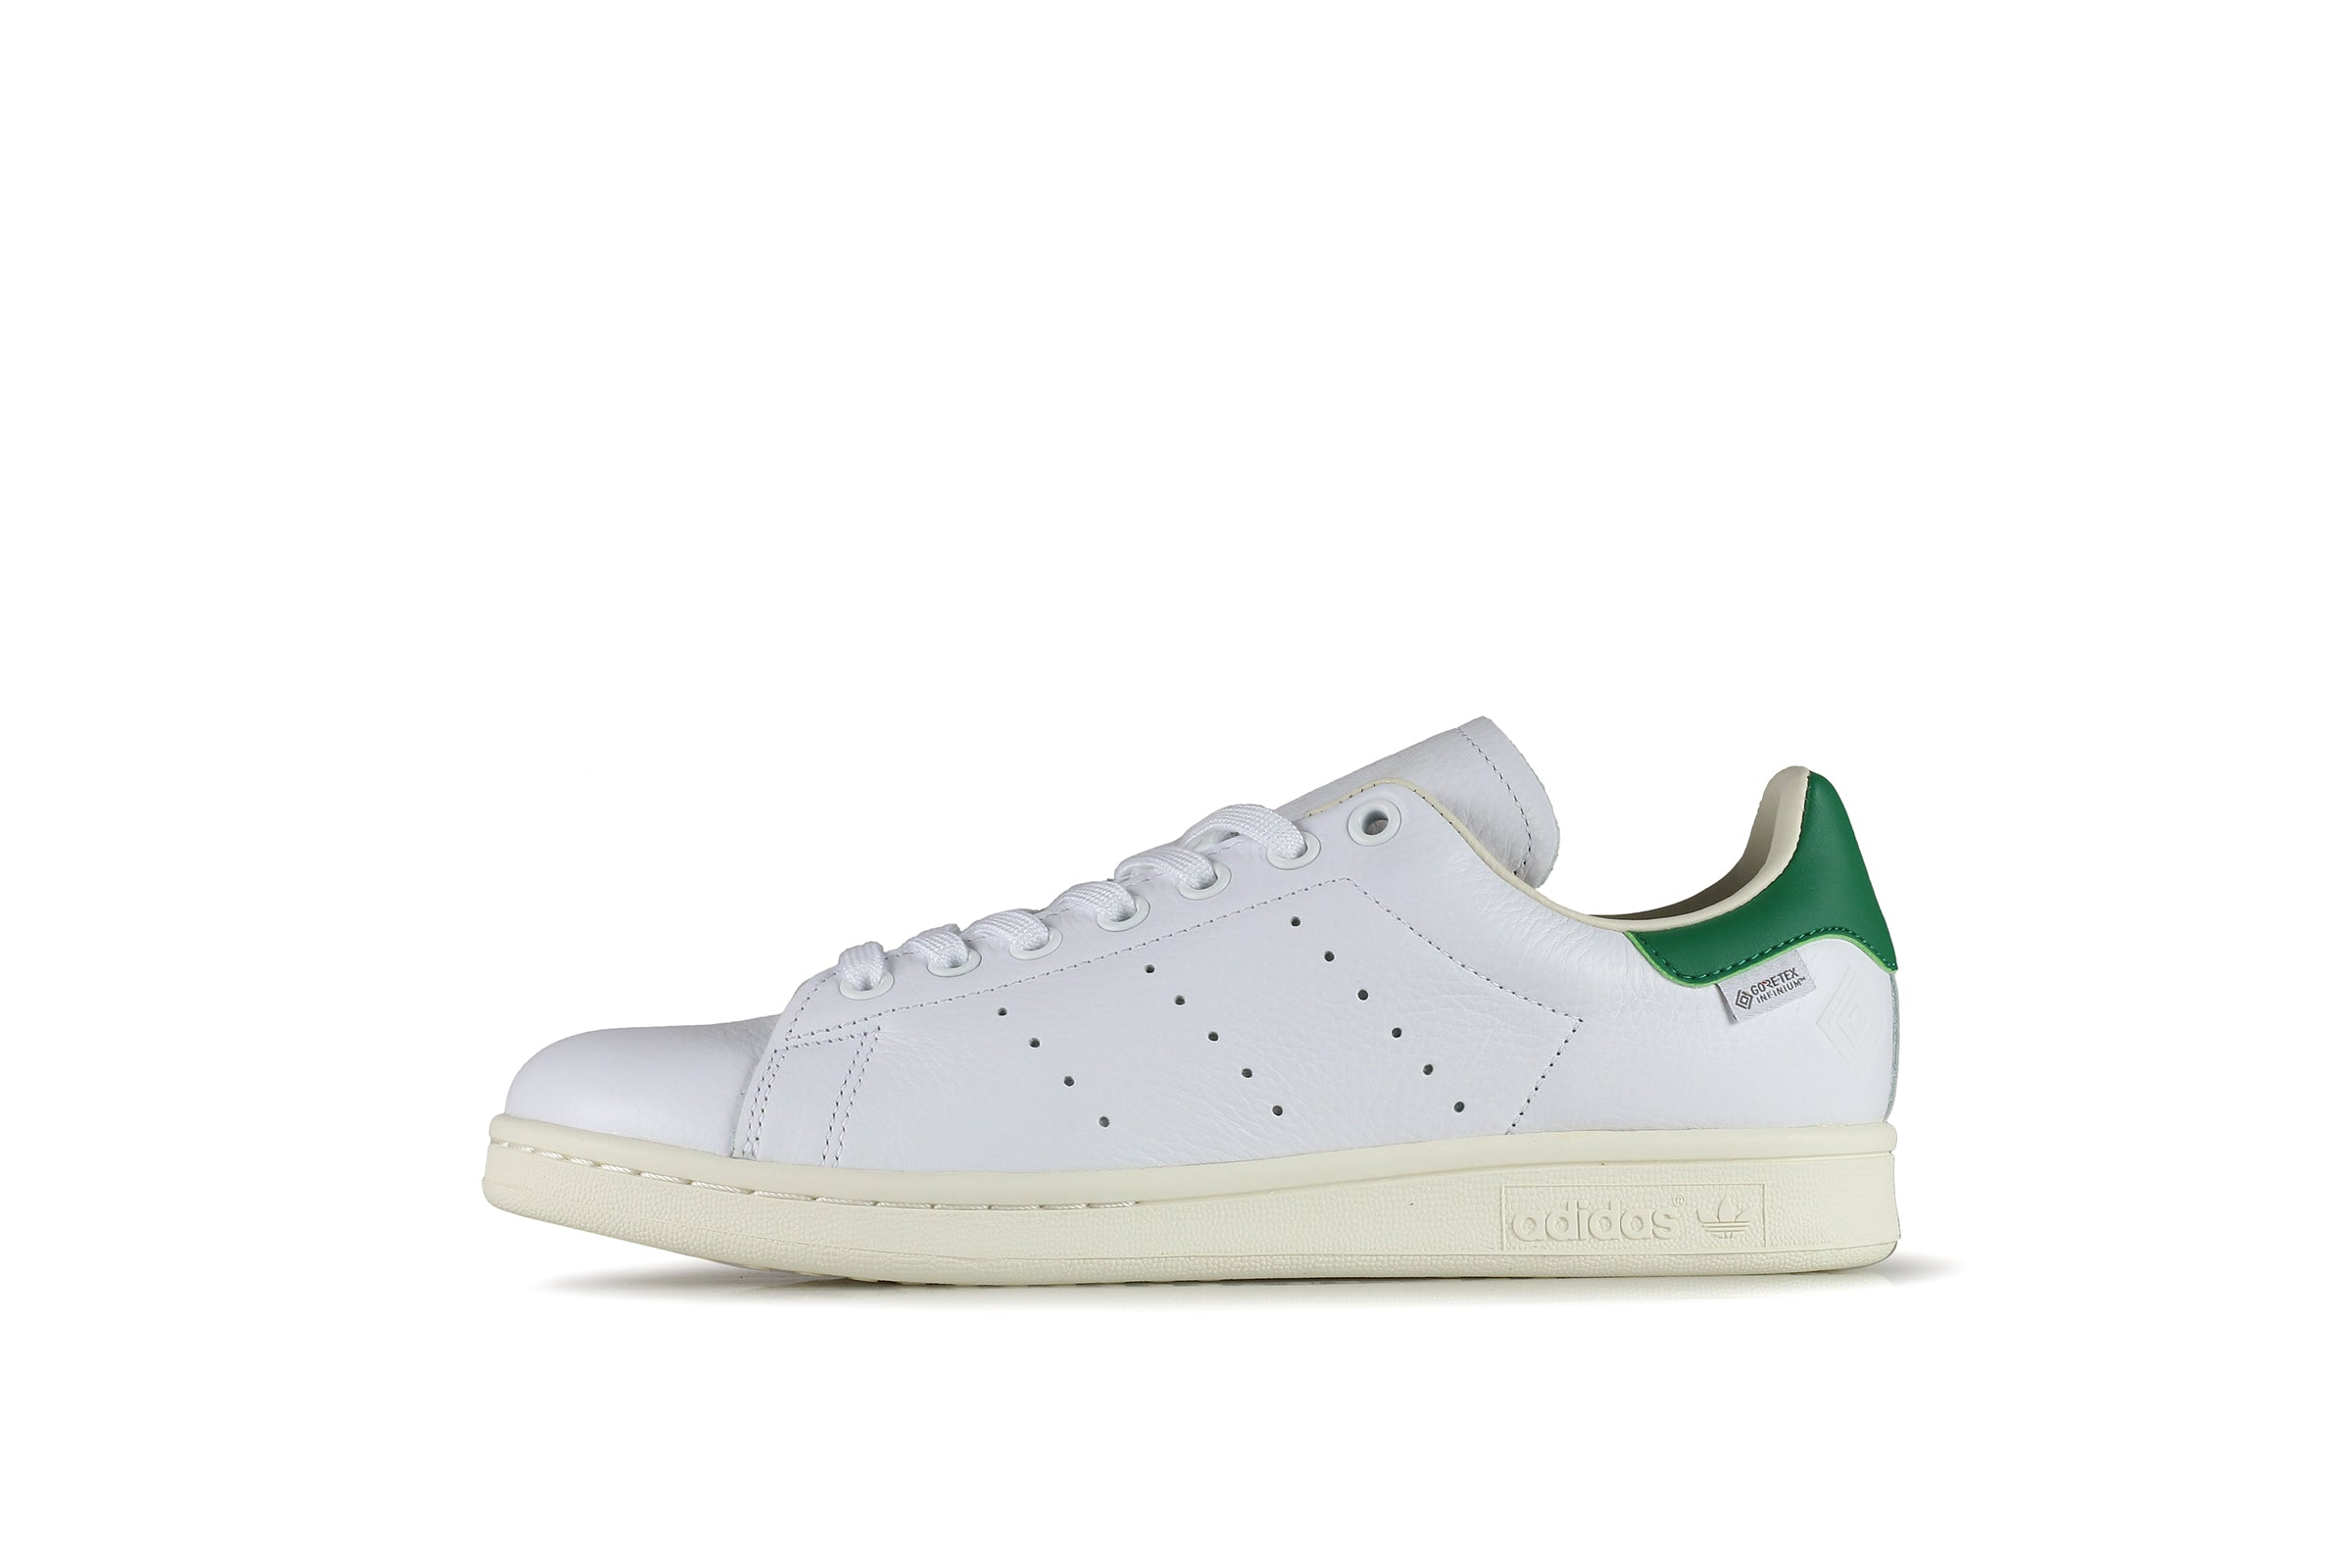 Adidas Stan Smith x Gore-Tex Infinium